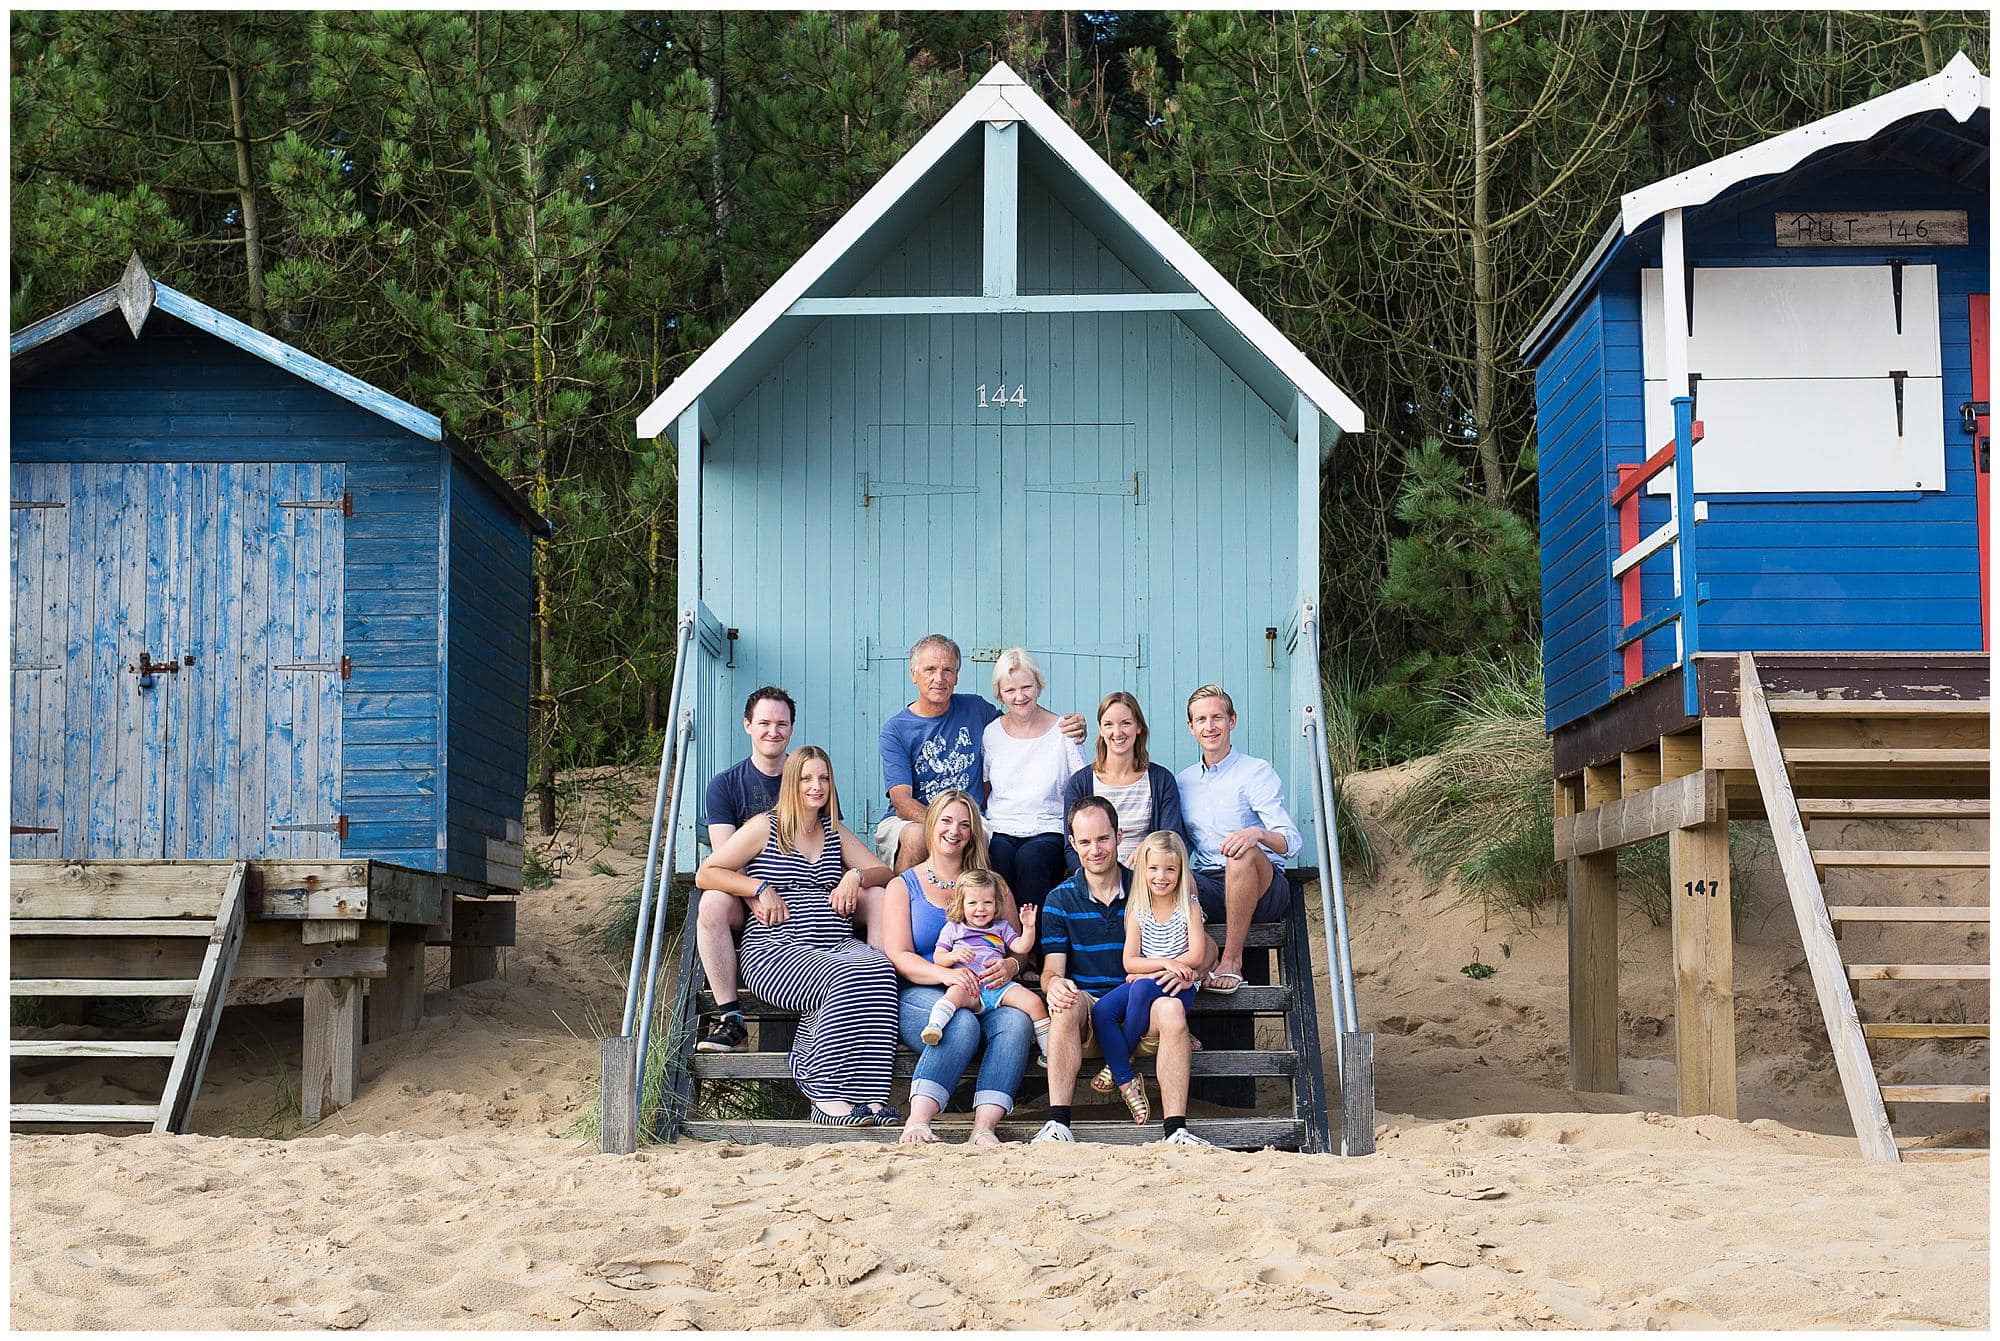 Extended Family Portrait in front of a beach hut in Suffolk